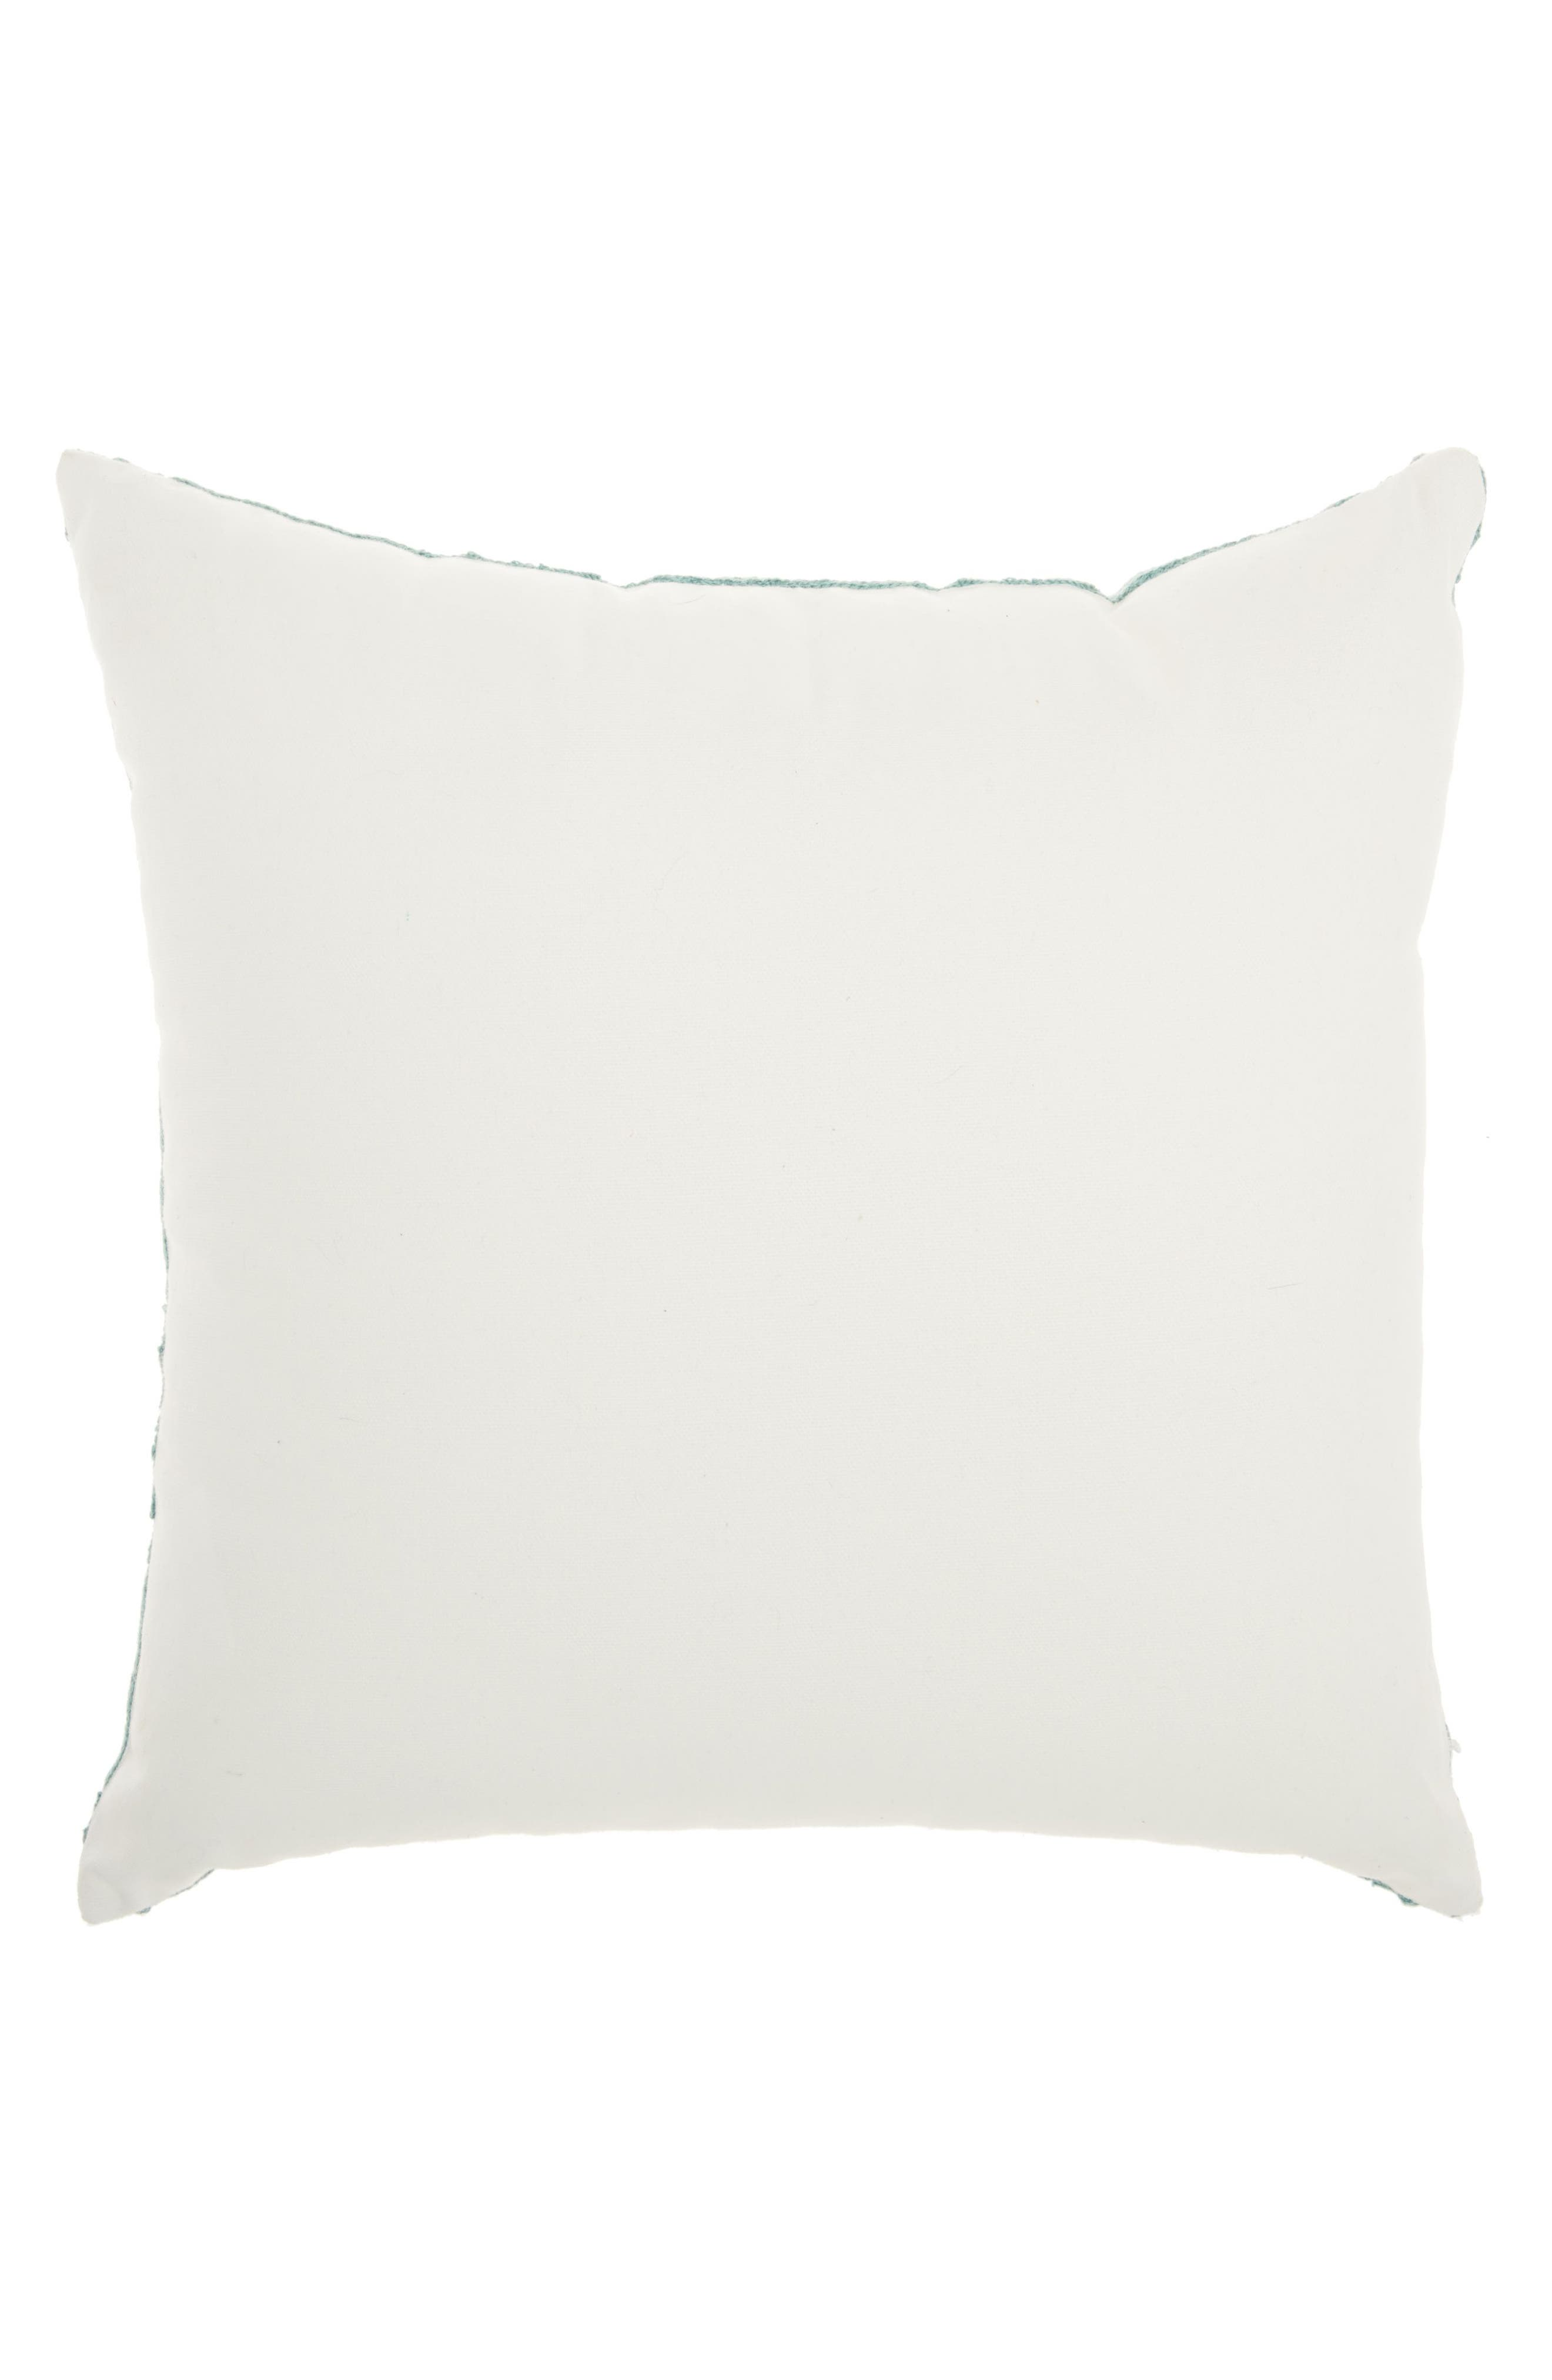 Tile Embroidered Accent Pillow,                             Alternate thumbnail 2, color,                             Celadon